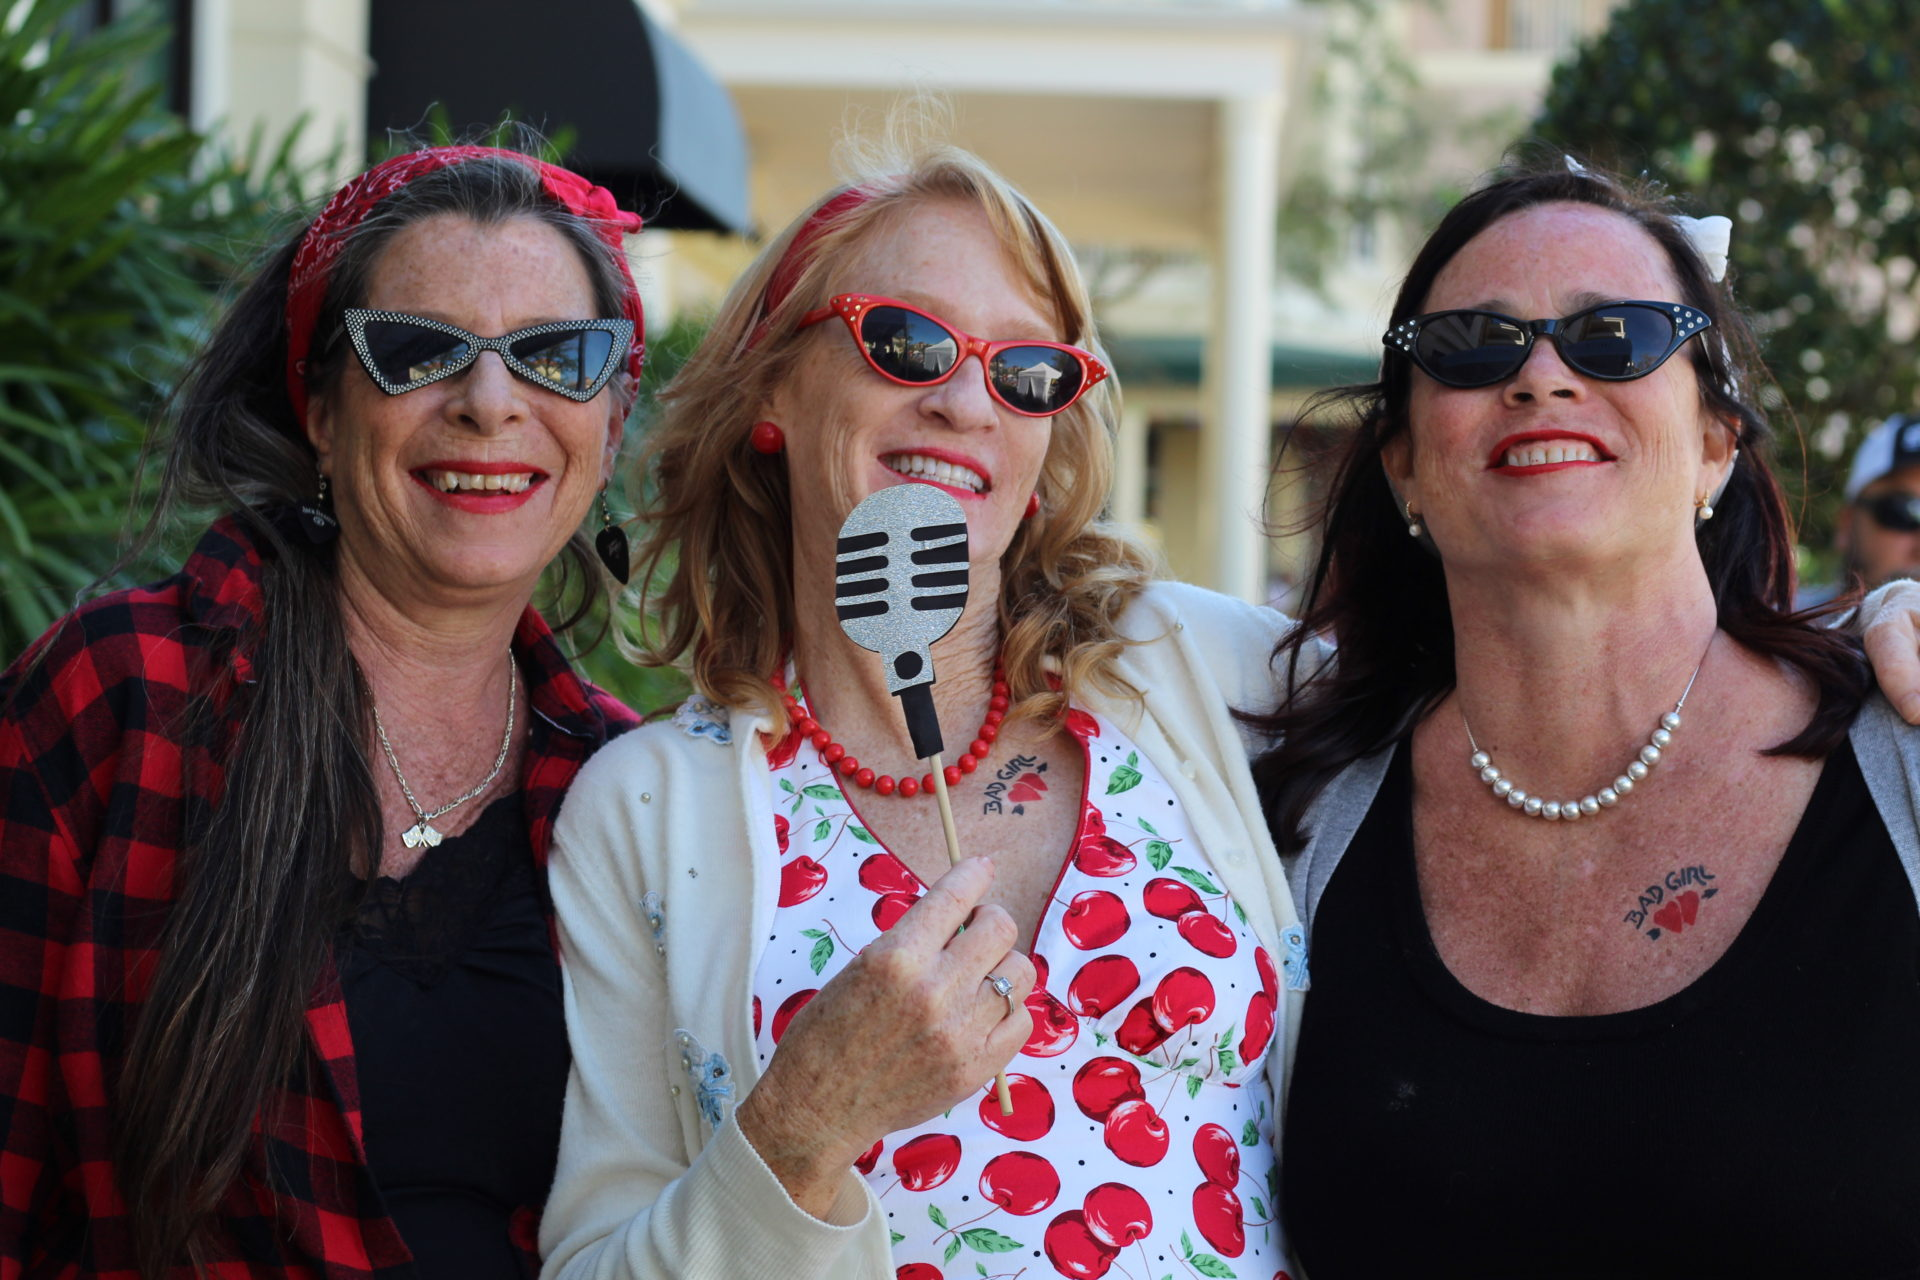 Three women smiling with microphone prop in hand